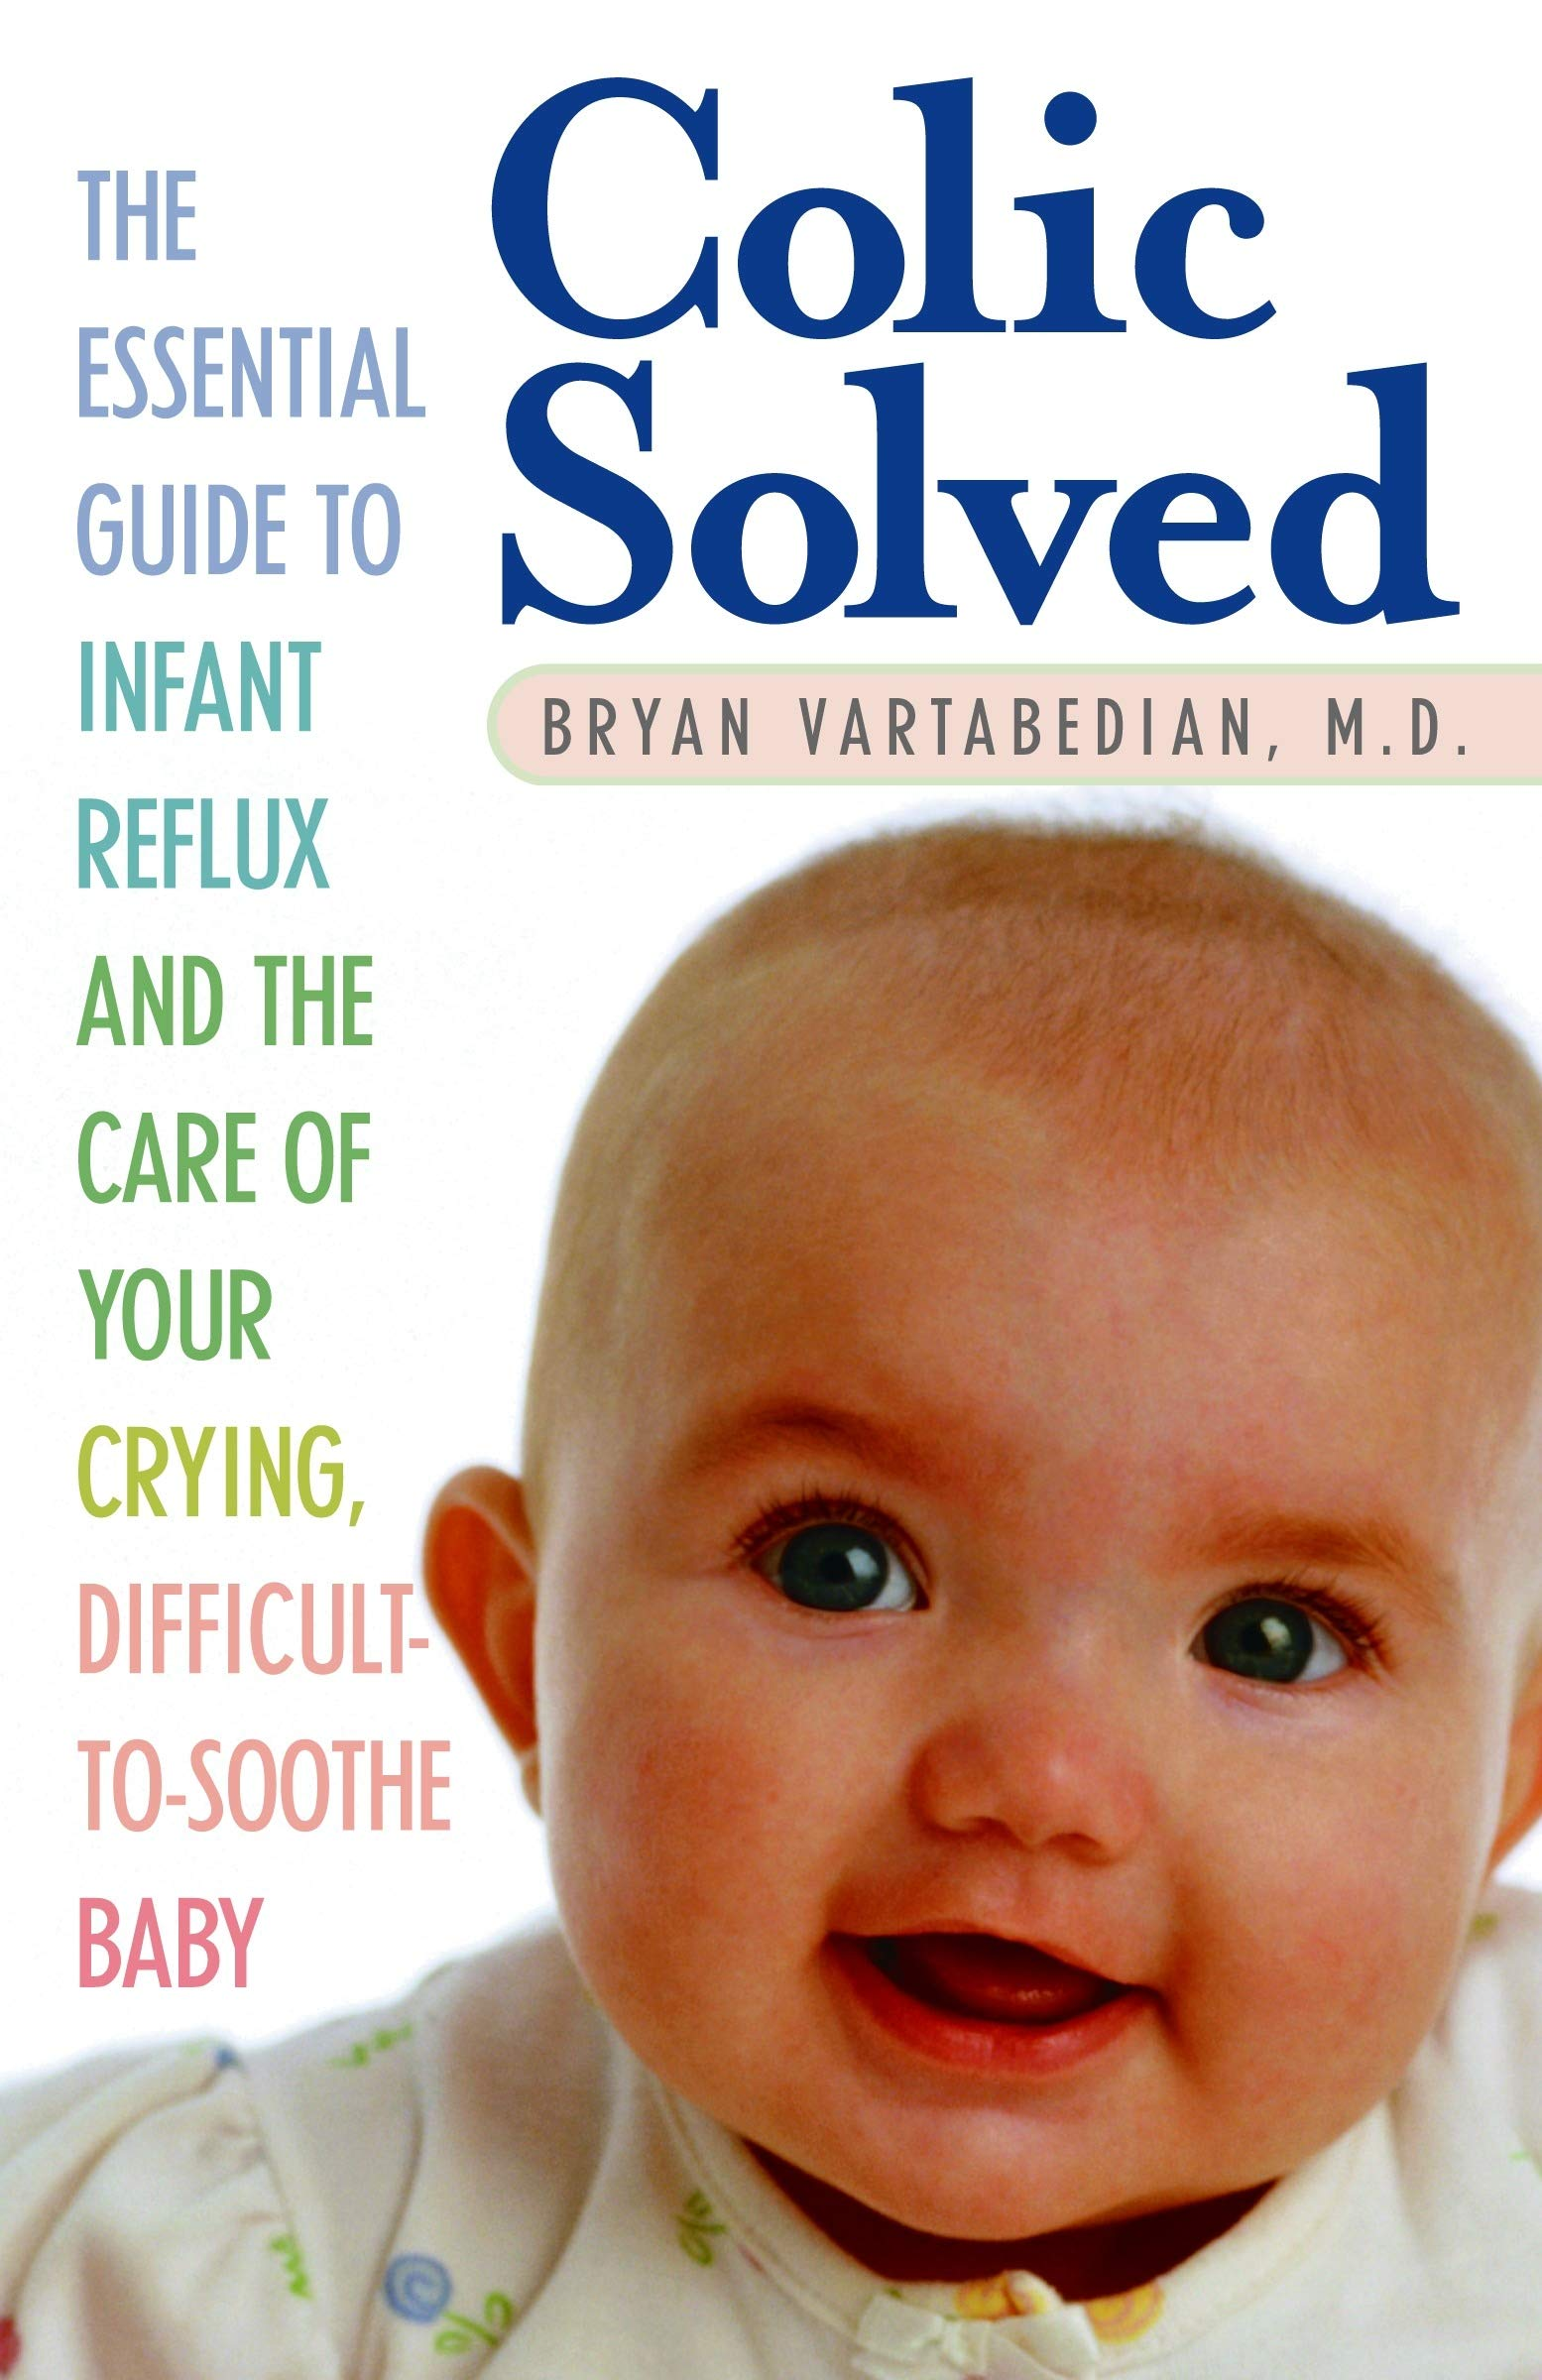 Colic Solved The Essential Guide To Infant Reflux And The Care Of